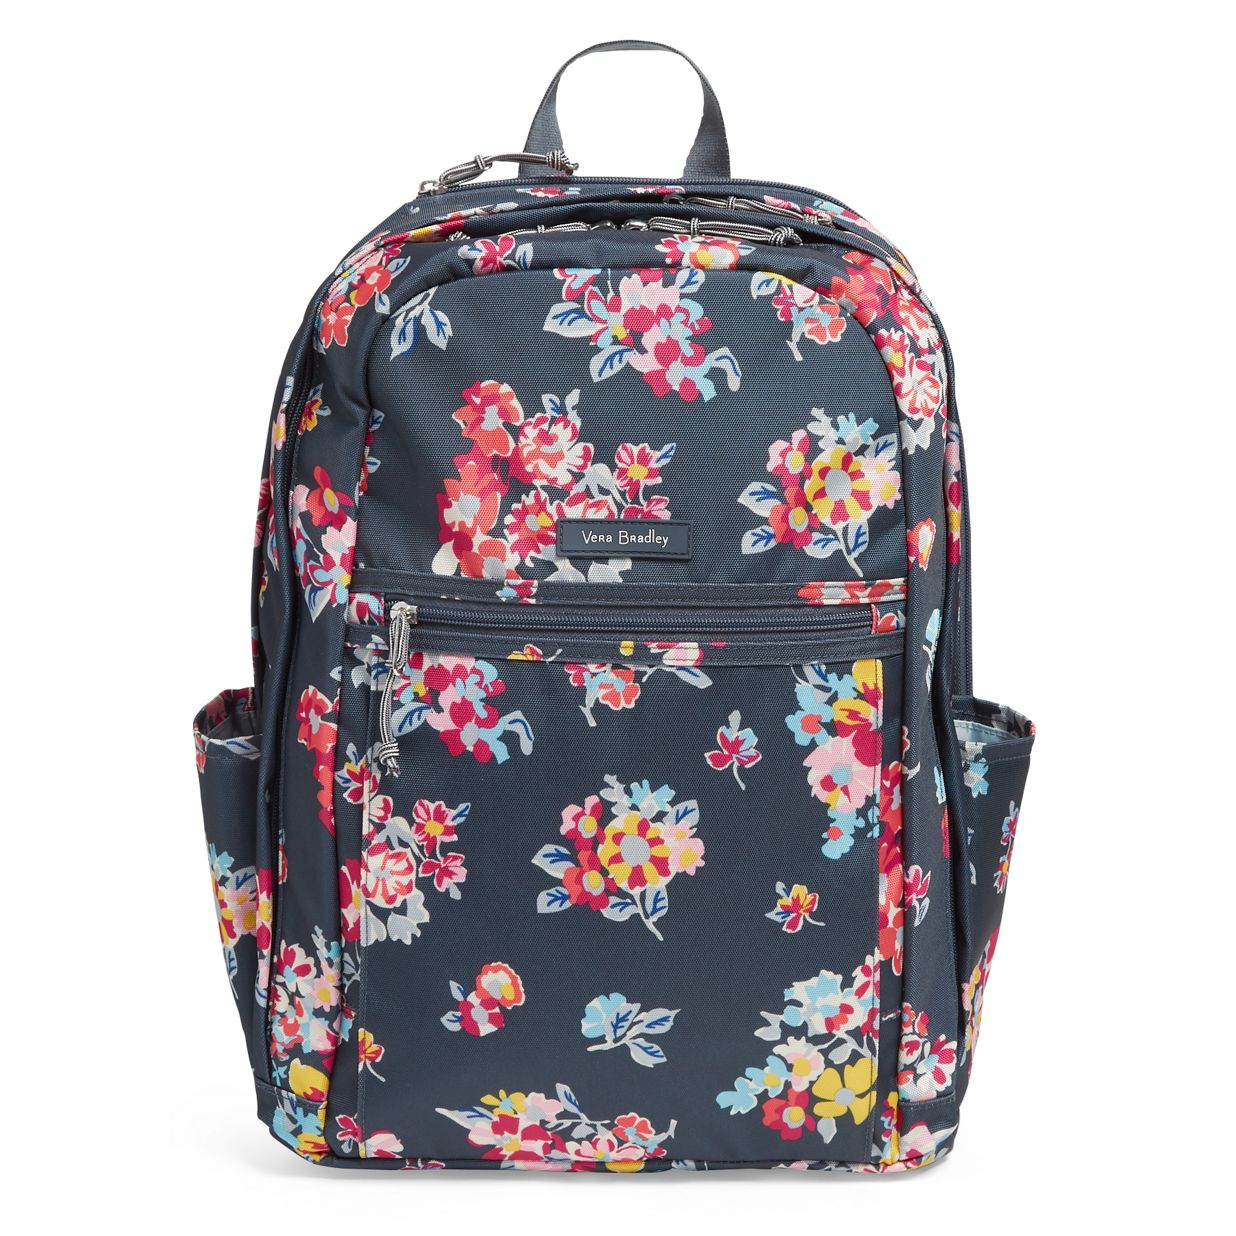 2bbe2bc59e49 Image of Lighten Up Grand Backpack in Tossed Posies ...